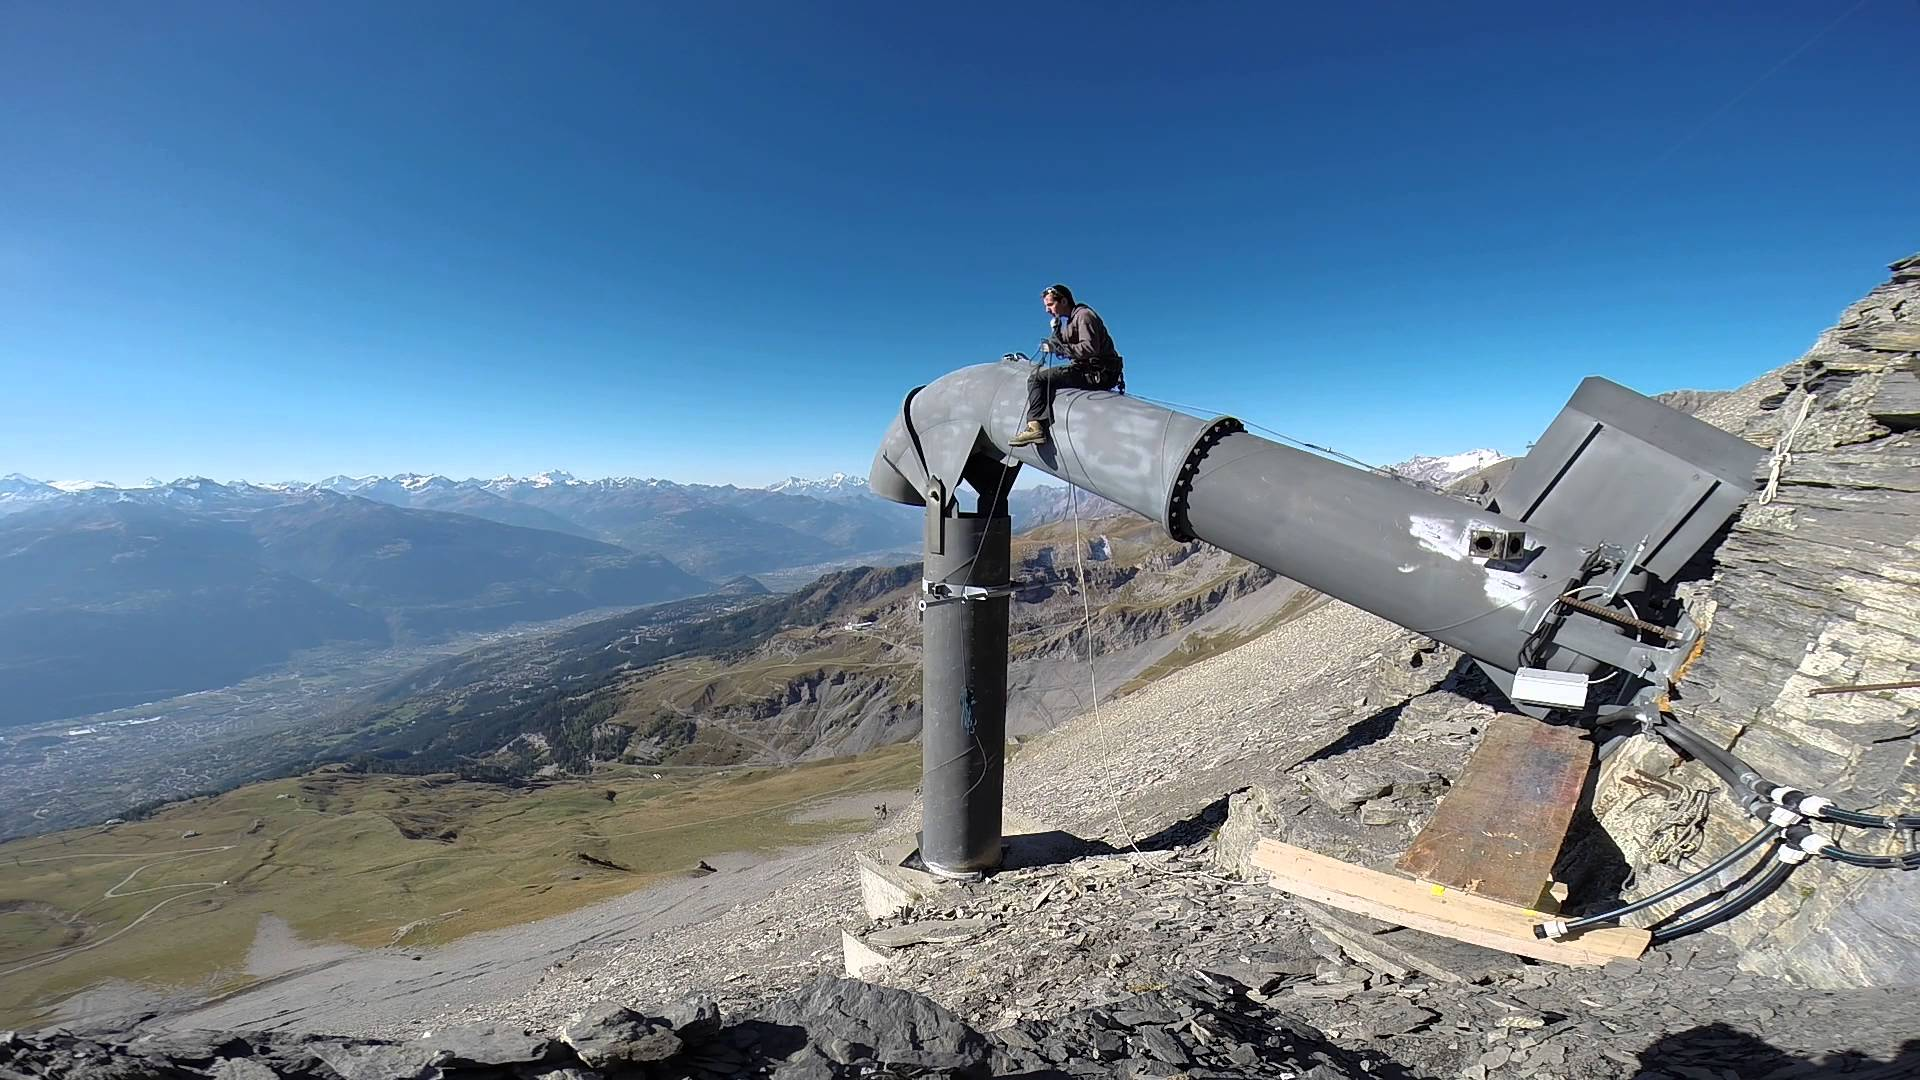 A Gaz-ex installation in a mountain - methods of containing high prone avalanche areas.